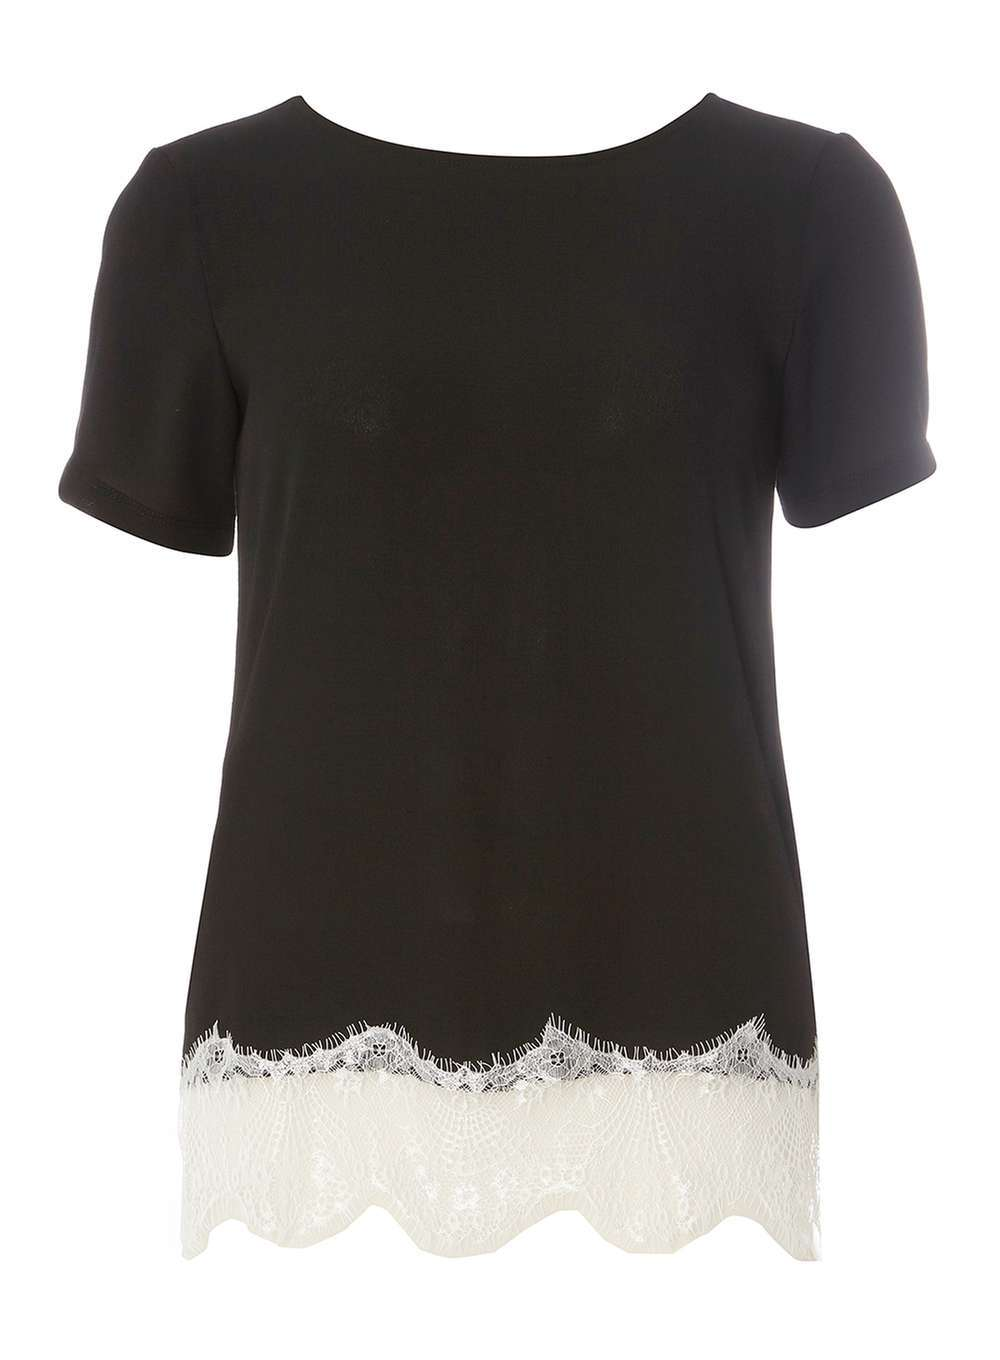 Womens Black And Ivory Woven Lace Tee Black - neckline: round neck; pattern: plain; style: t-shirt; secondary colour: ivory/cream; predominant colour: black; occasions: work, creative work; length: standard; fibres: polyester/polyamide - 100%; fit: body skimming; sleeve length: short sleeve; sleeve style: standard; pattern type: fabric; texture group: jersey - stretchy/drapey; embellishment: lace; season: a/w 2016; wardrobe: highlight